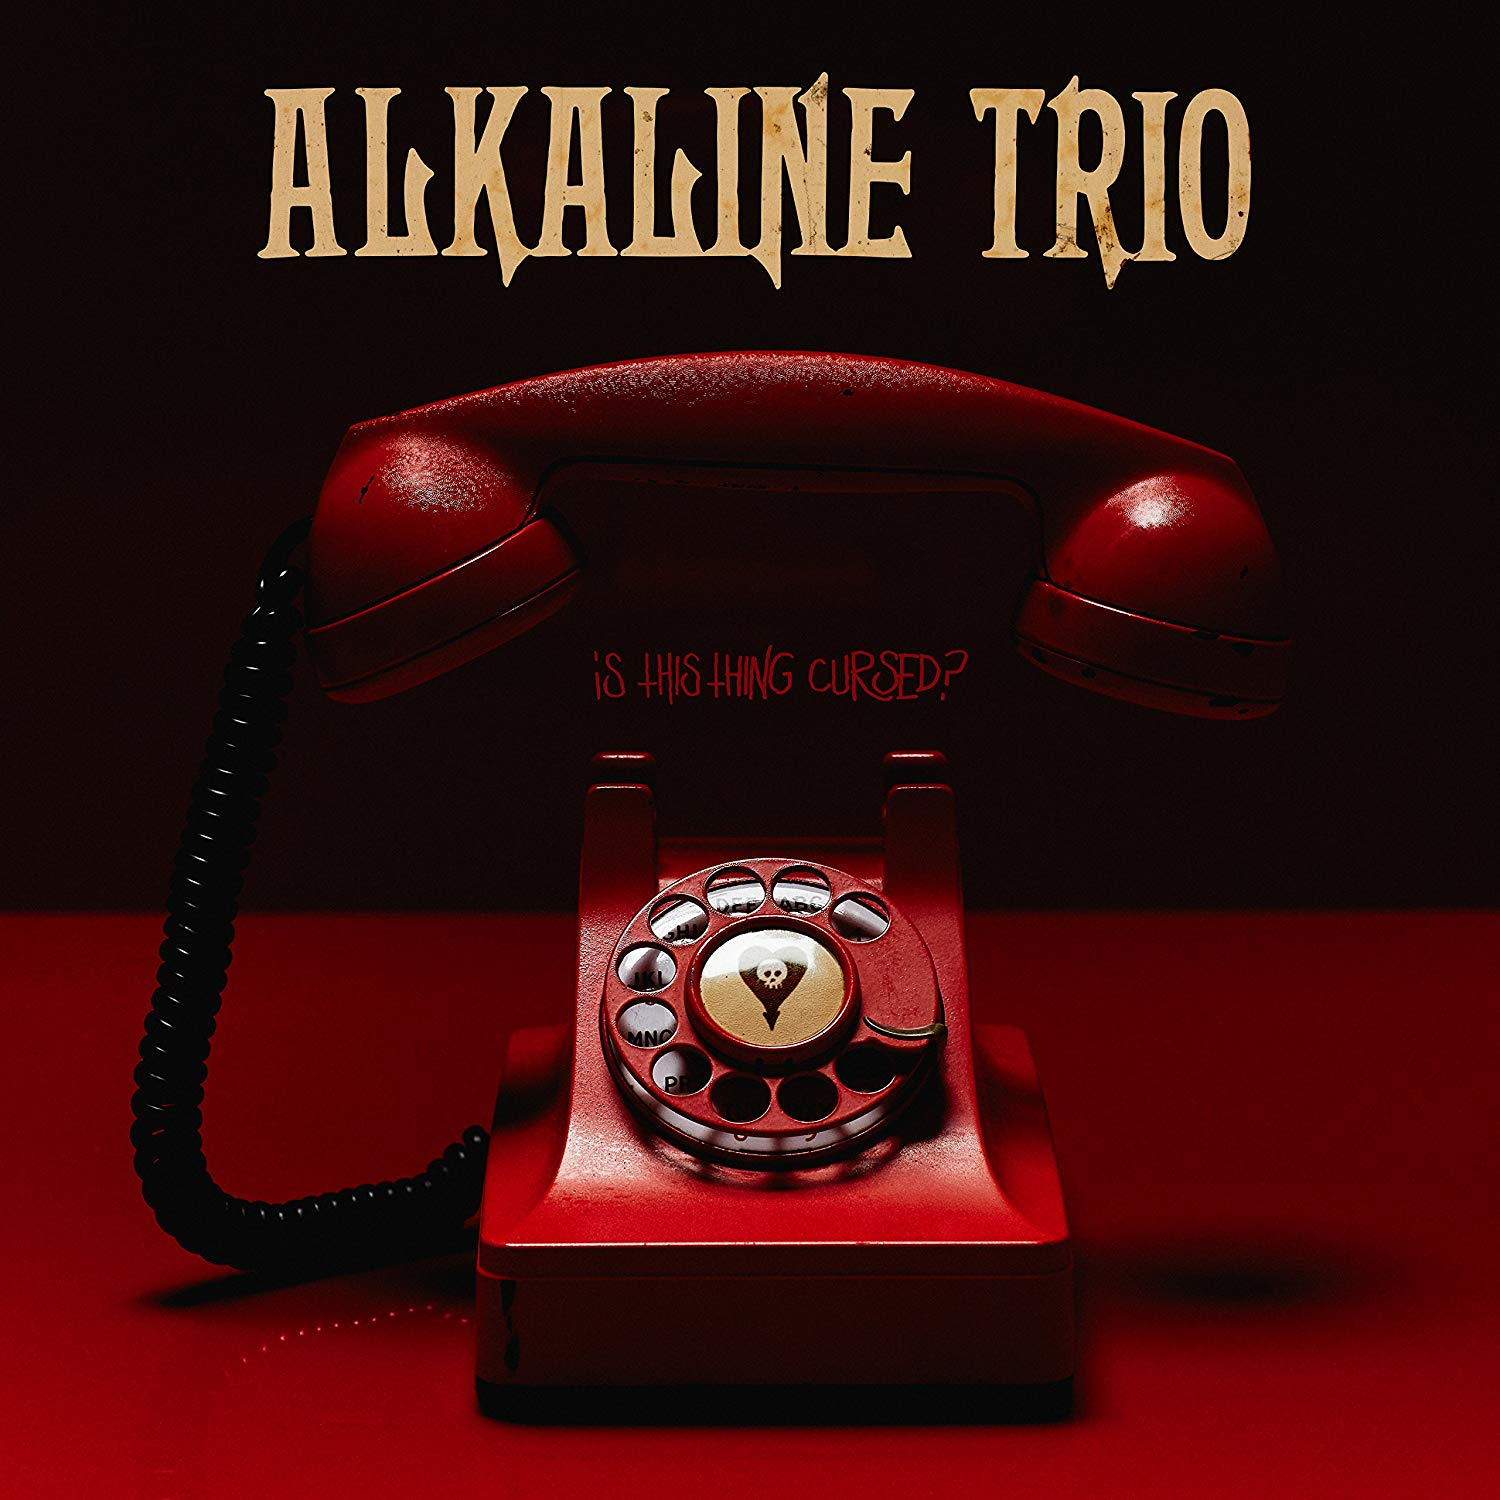 Alkaline Trio - Is This Thing Cursed? (Opaque Red) [Colored Vinyl] (Red)